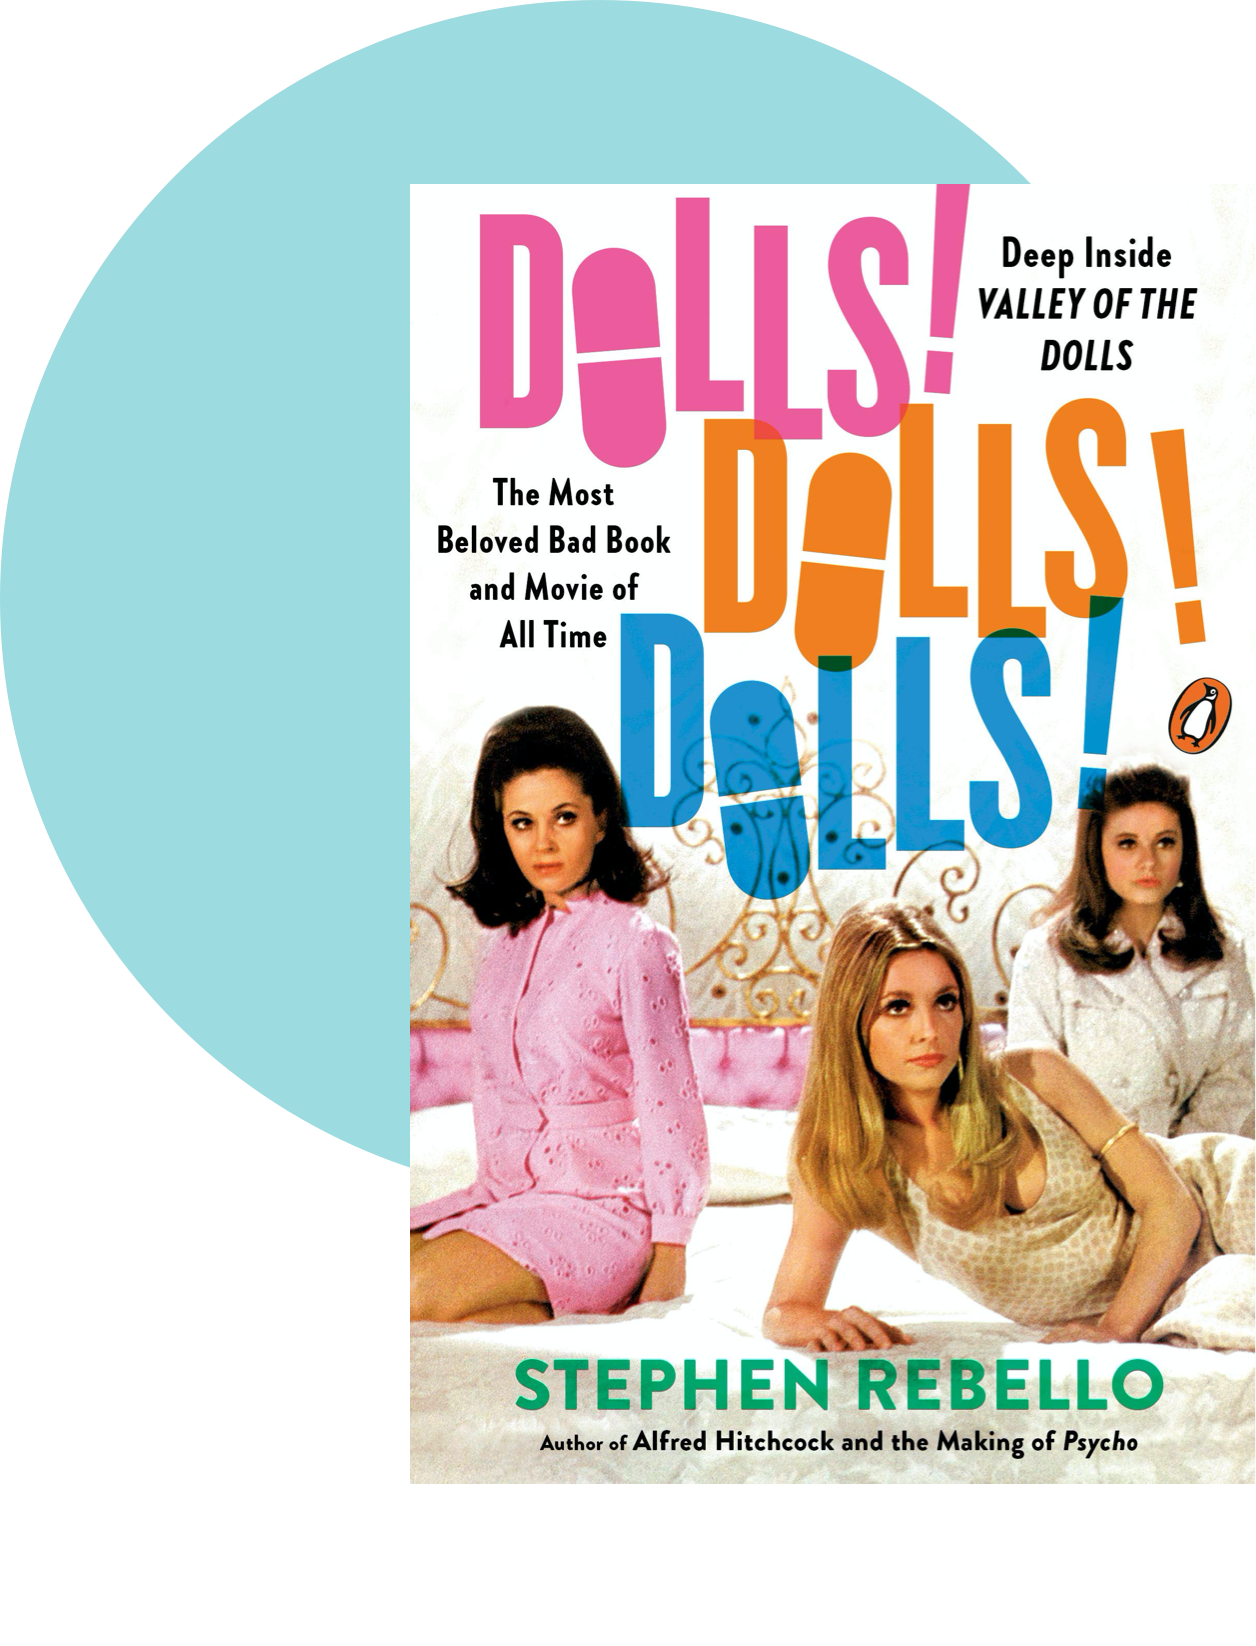 Dolls! Dolls! Dolls! by Stephen Rebello